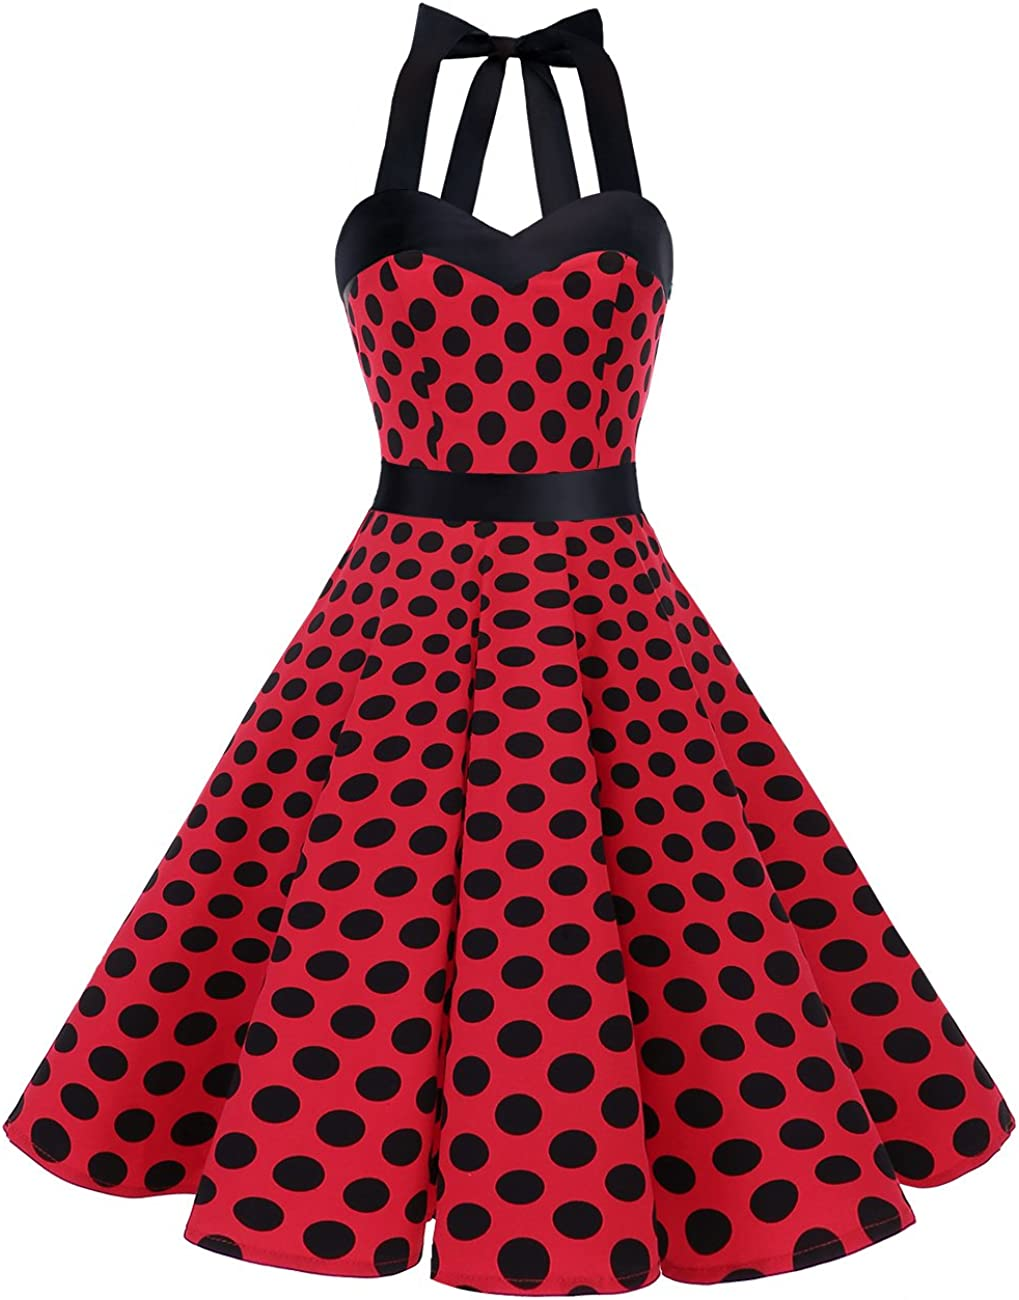 TALLA XL. Dresstells® Halter 50s Rockabilly Polka Dots Audrey Dress Retro Cocktail Dress Red Black Dot XL